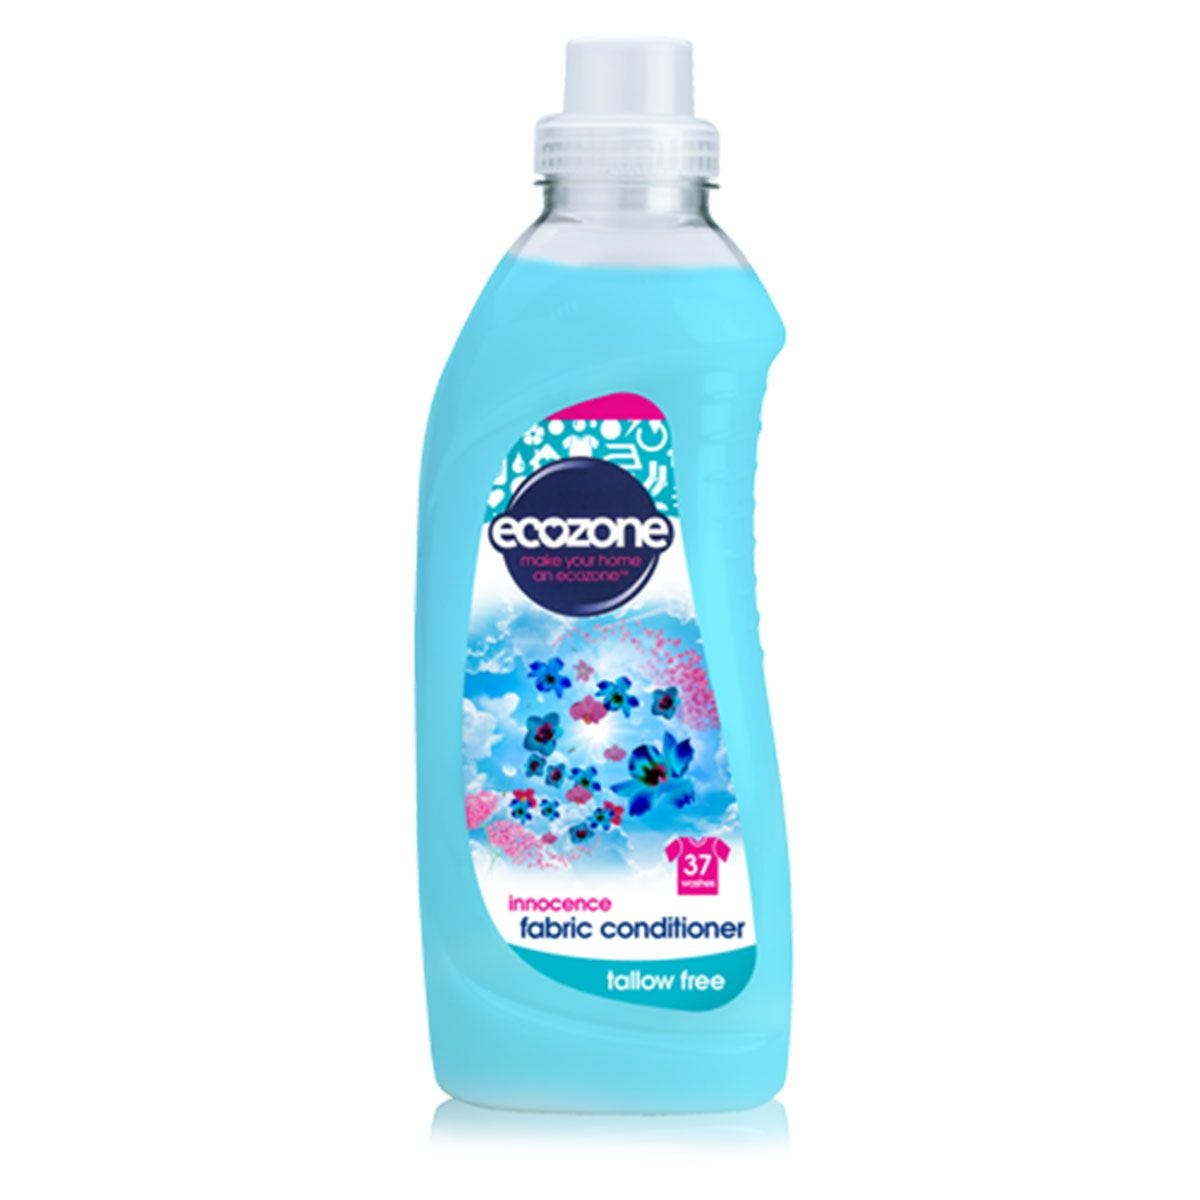 Ecozone Innocence Fabric Conditioner - Floral Fragrance